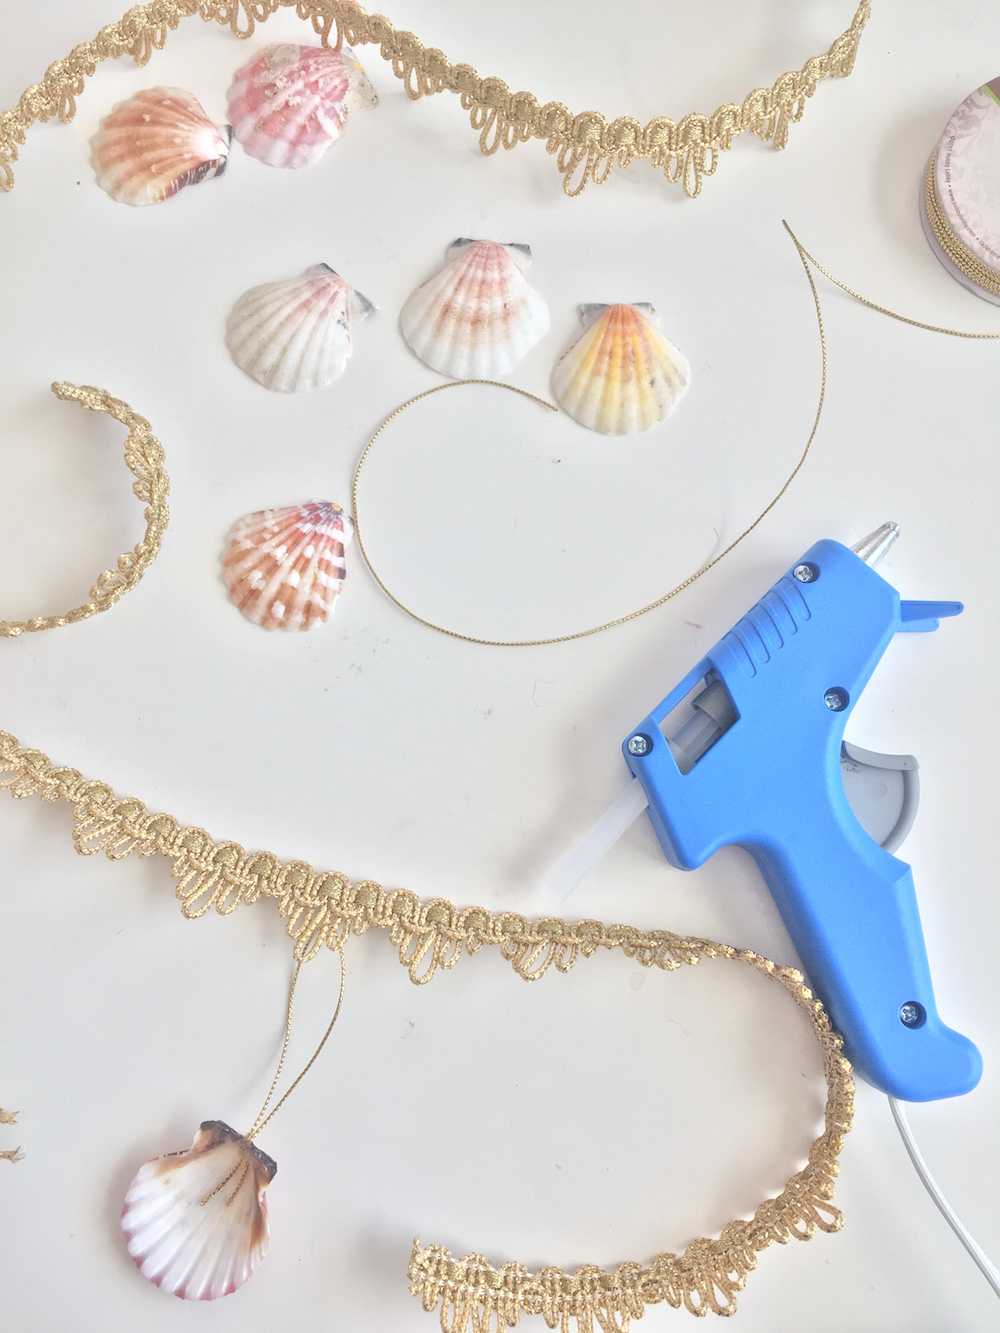 A glue gun and shells to make the necklace